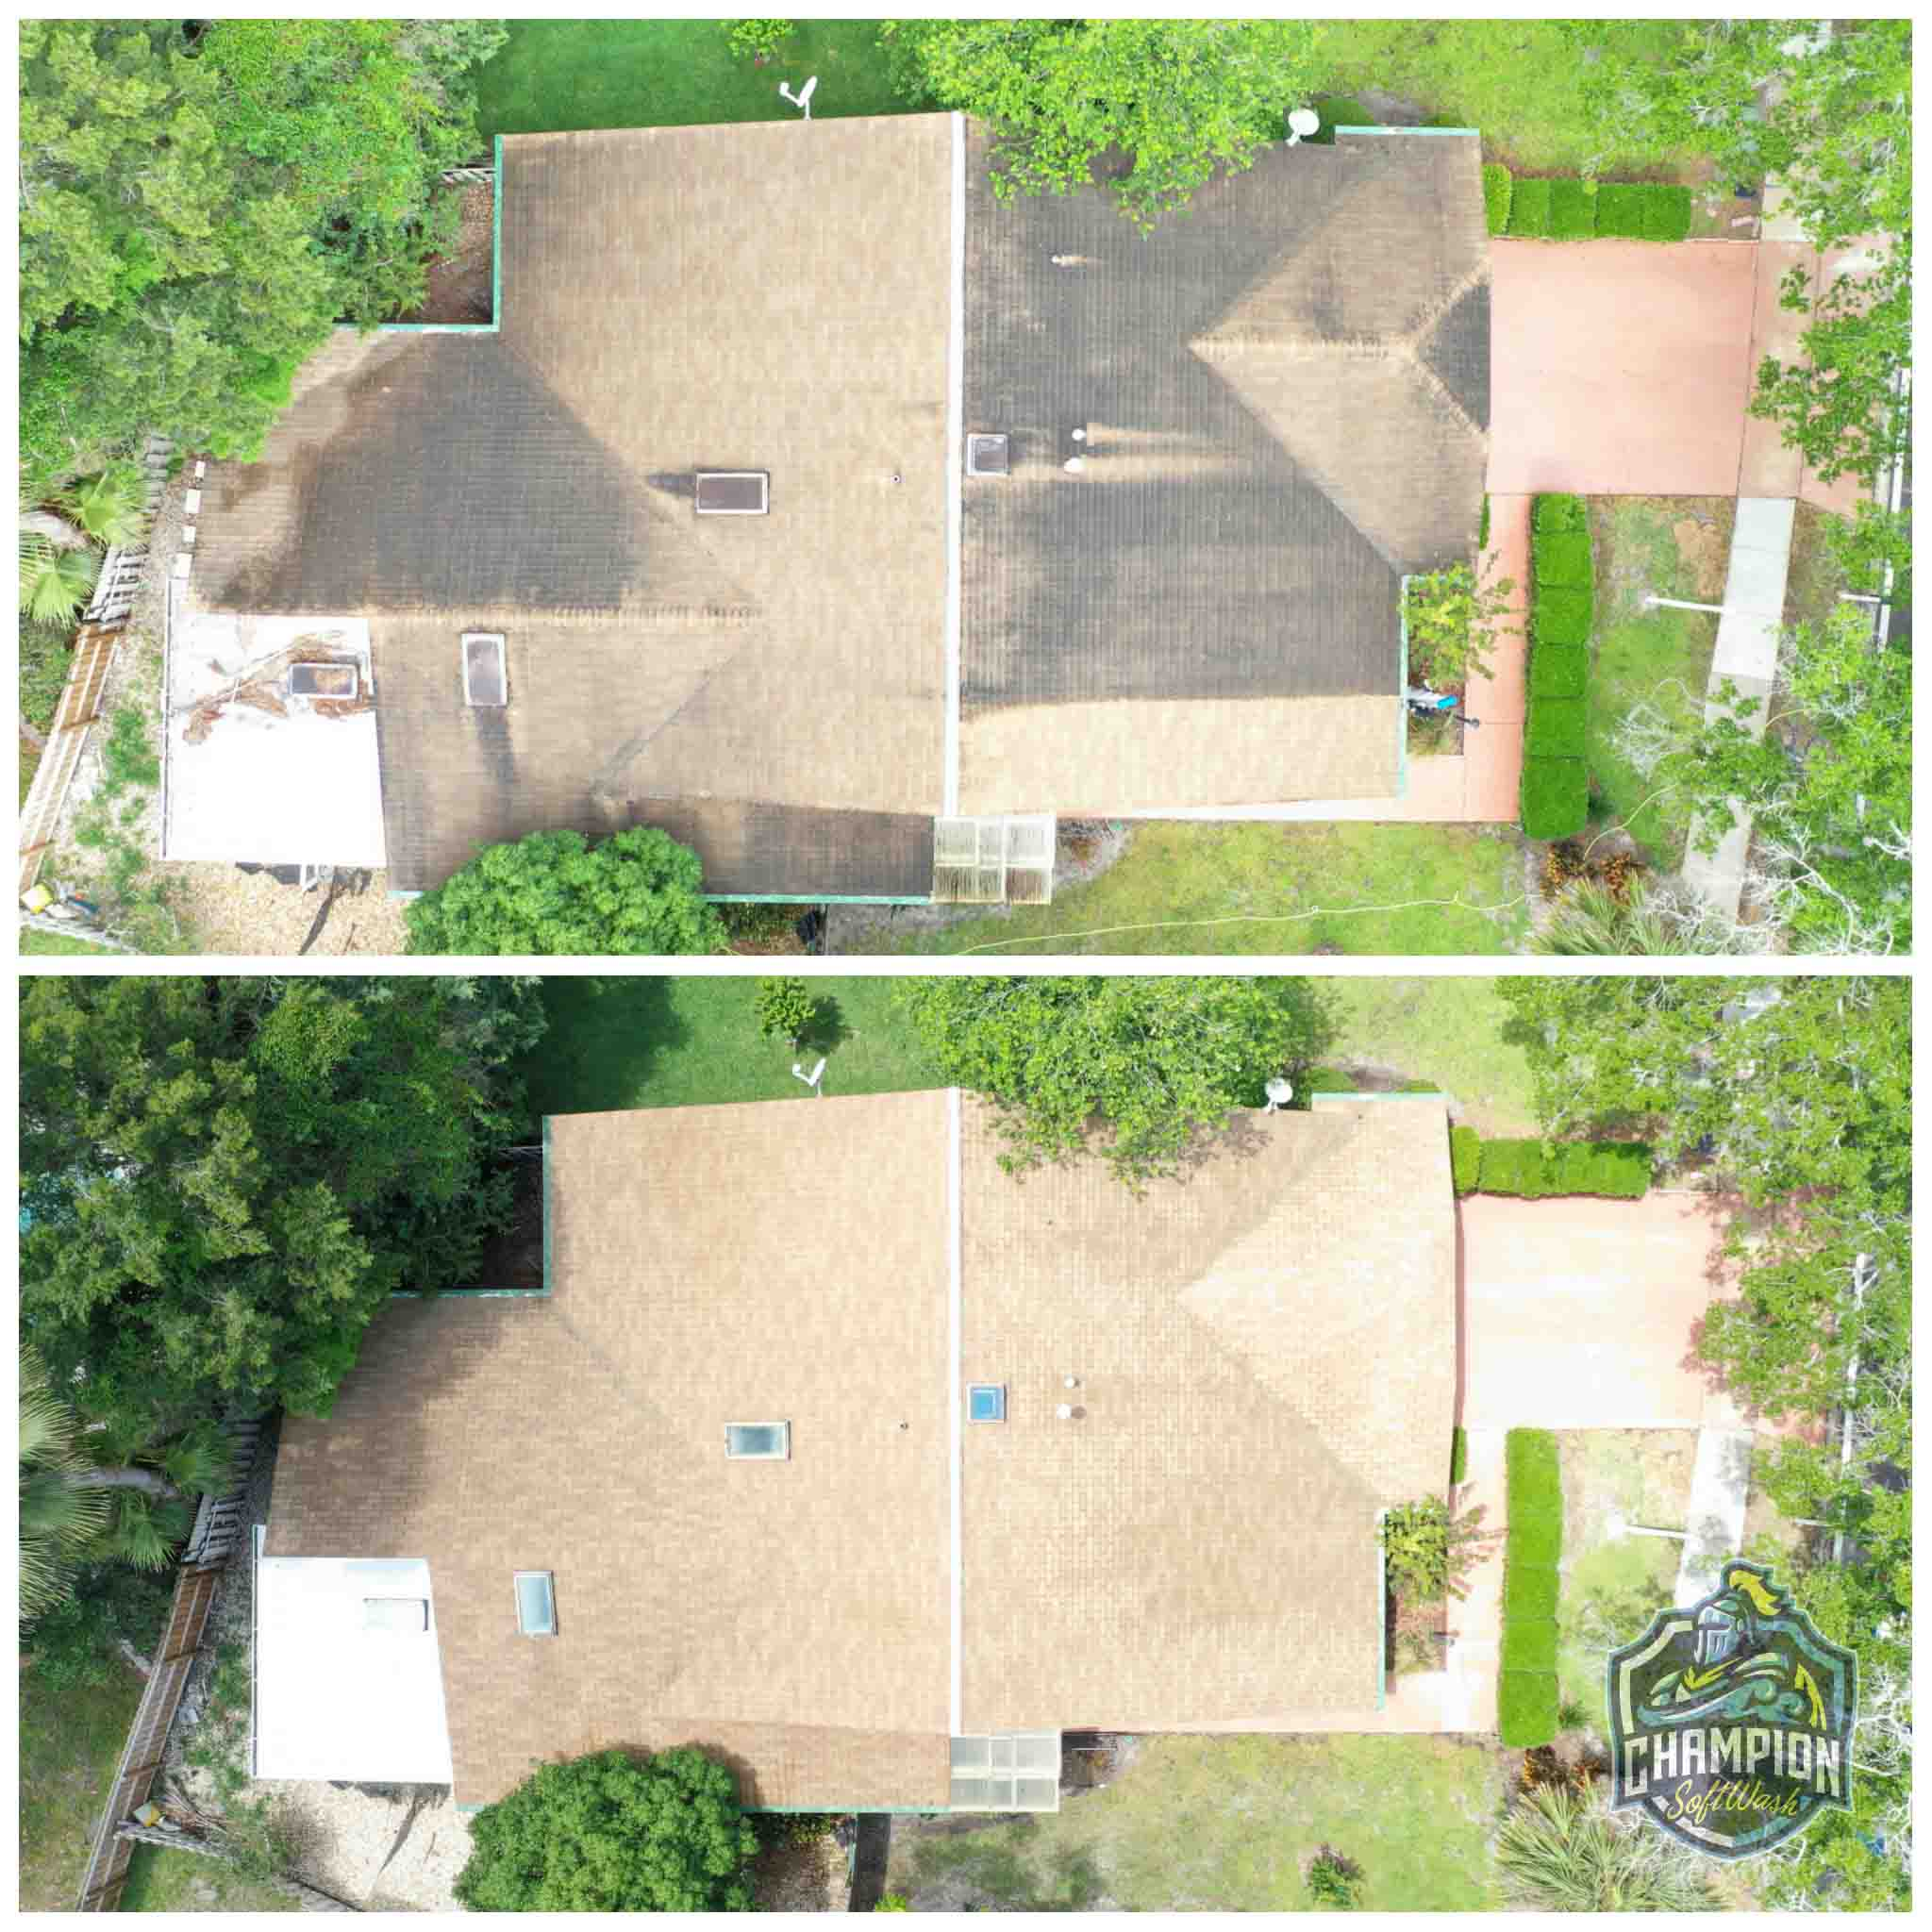 Roof Cleaning for realtor listing in Casselberry, FL. Shingle Roof cleaning, skylight cleaning, flat roof cleaning